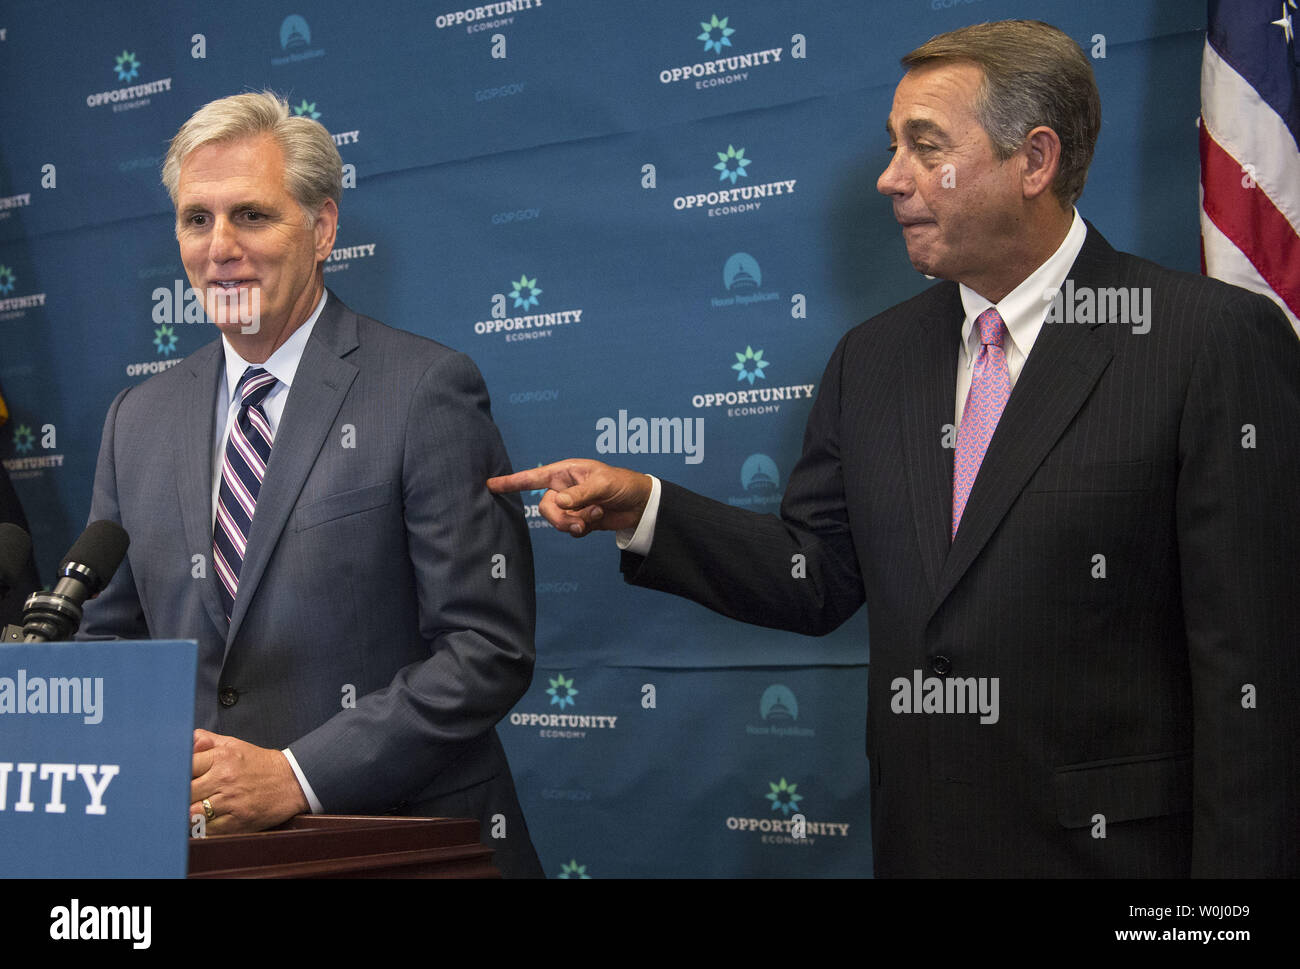 Speaker of the House John Boehner (R-OH) (R) points to House Majority Leader Kevin McCarthy (R-SD) in response to a reporter's question on Boehner's recent announcement to step down, during a press conference on Capitol Hill in Washington, D.C. on September 29, 2015. Photo by Kevin Dietsch/UPI - Stock Image